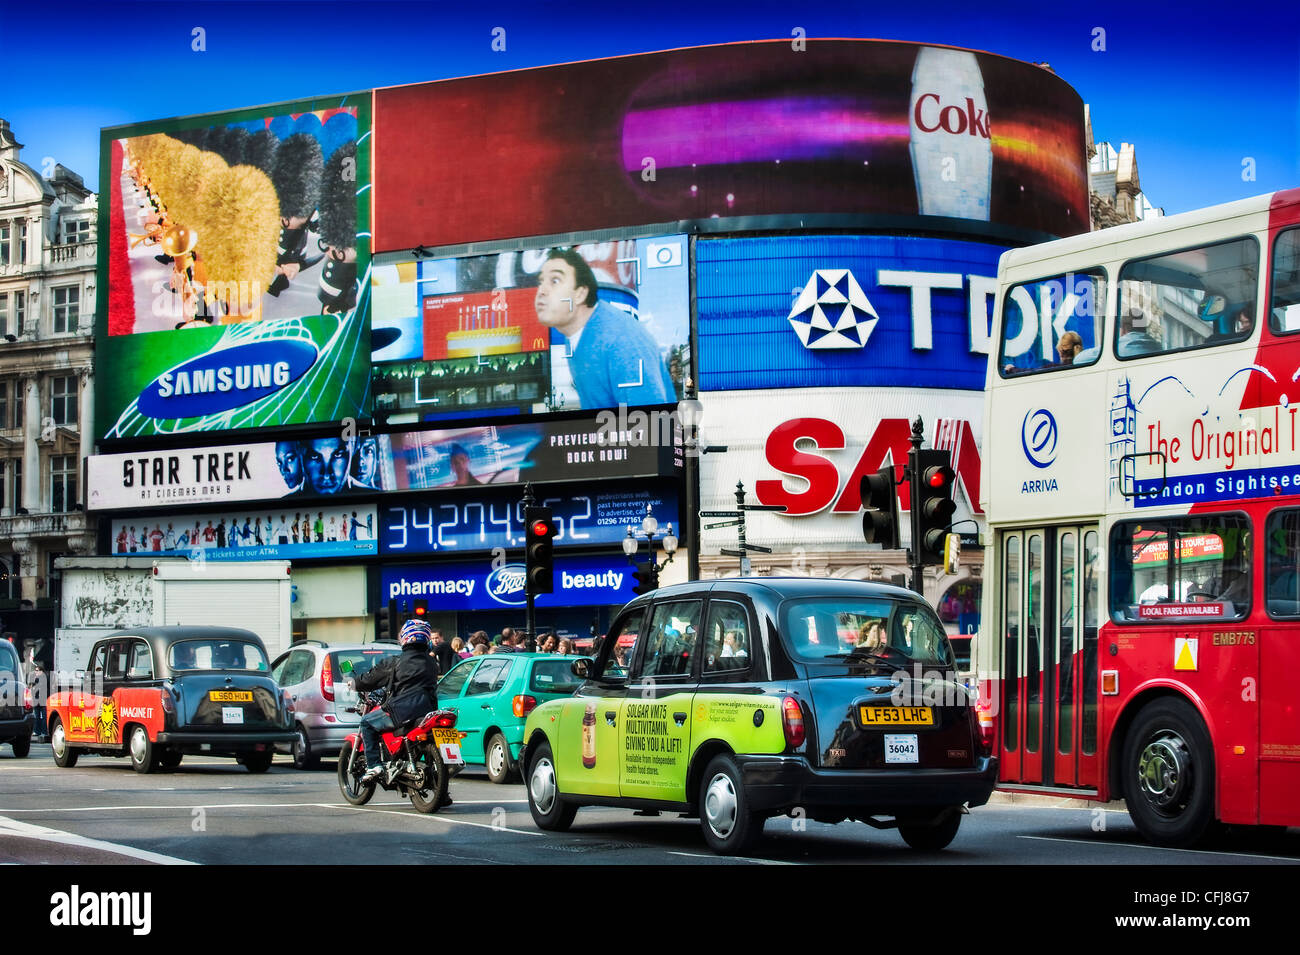 London buses and cabs early evening rush hour, Piccadilly Circus, London West End. - Stock Image